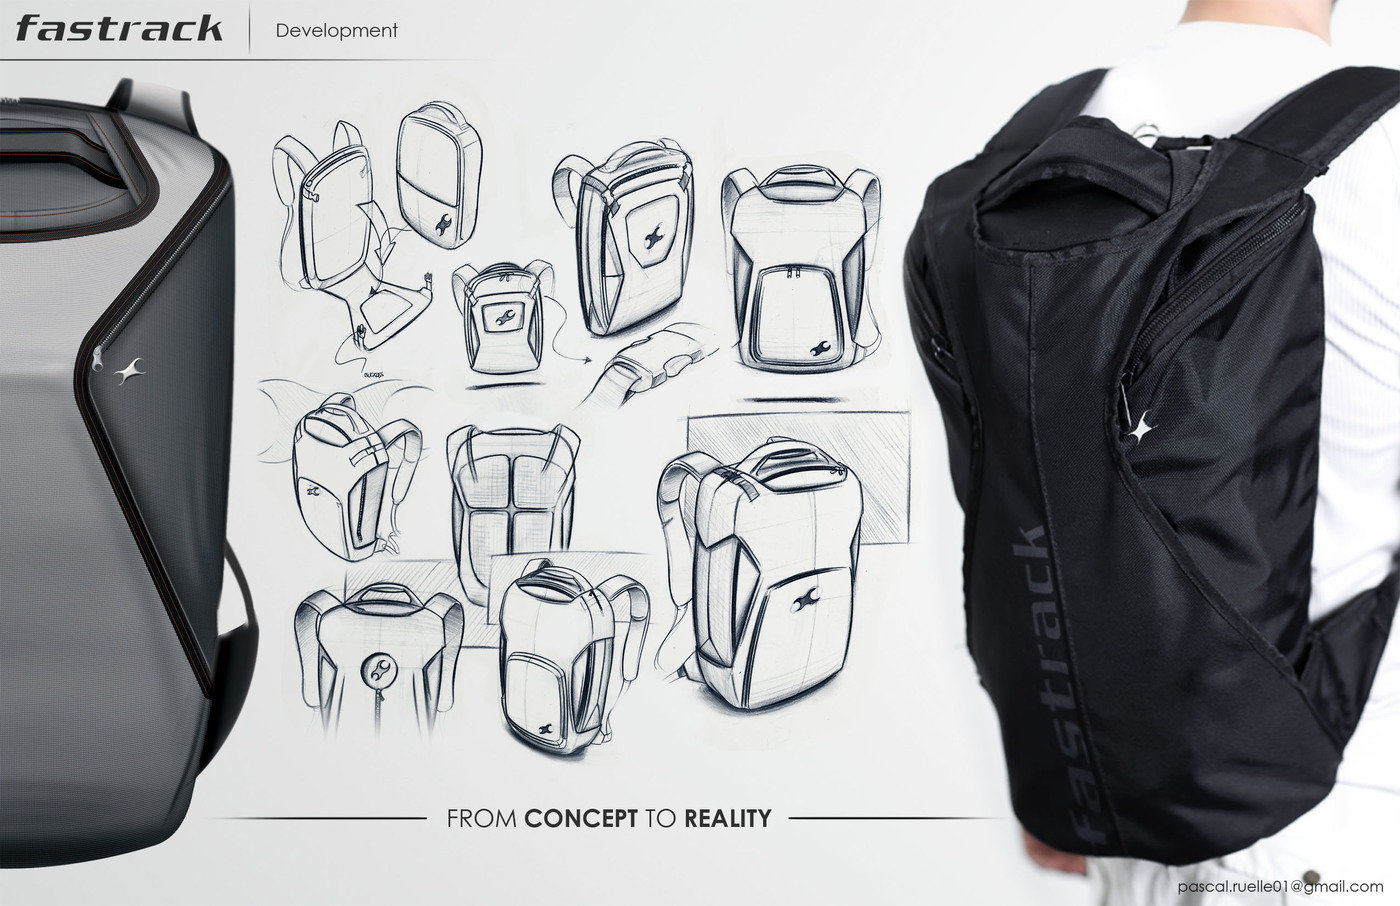 Fastrack - bags by pascal ruelle at Coroflot.com